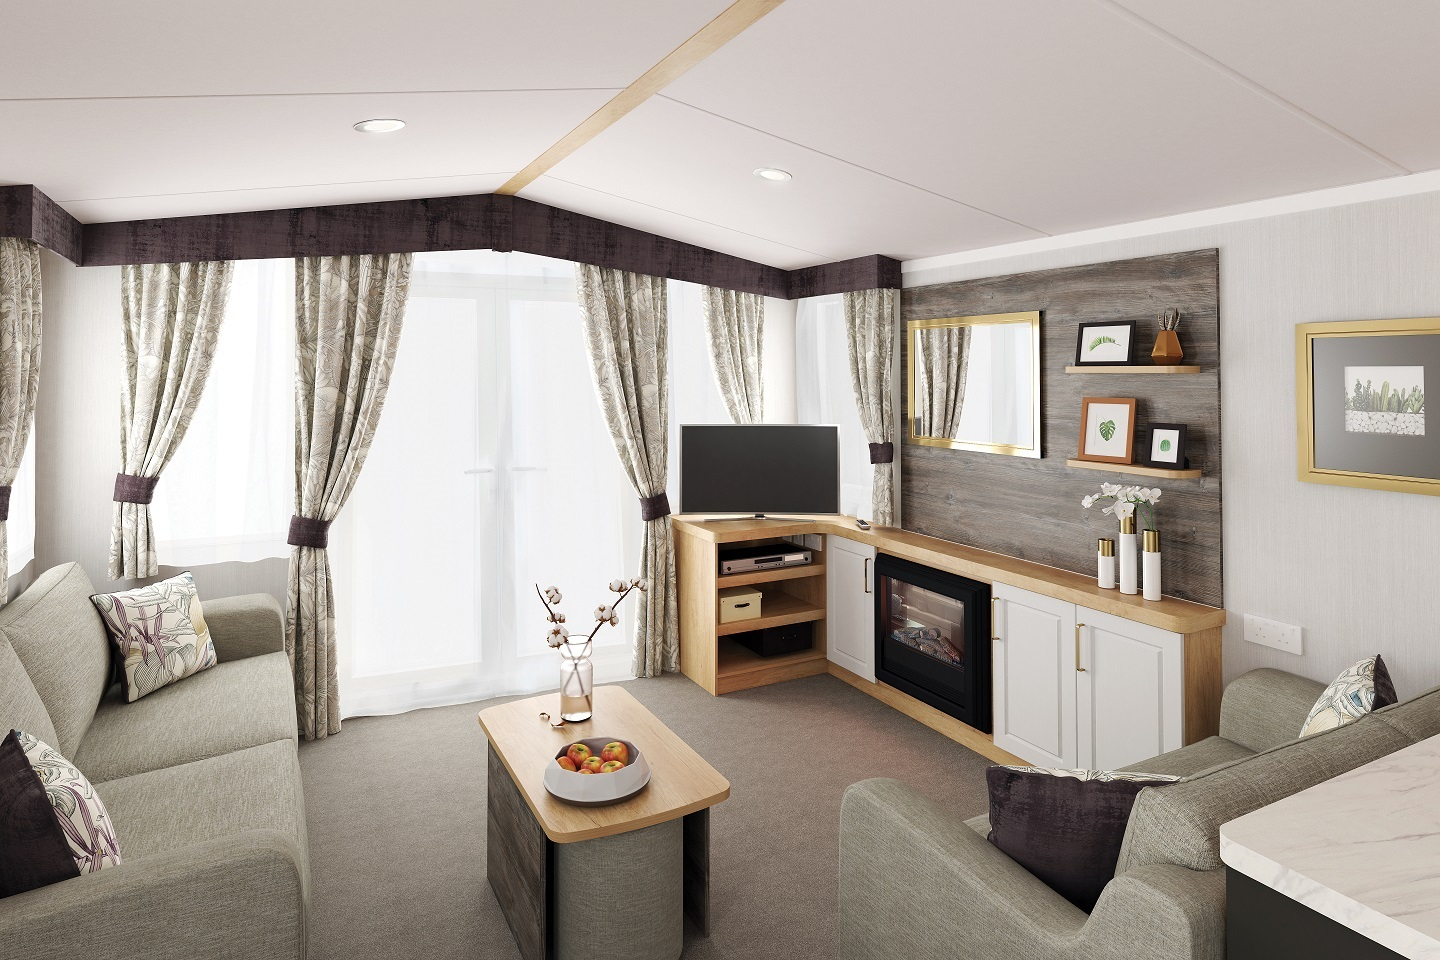 Swift Bordeaux: New Static Caravans and Holiday Homes for Sale, Available to Order Large Image 1